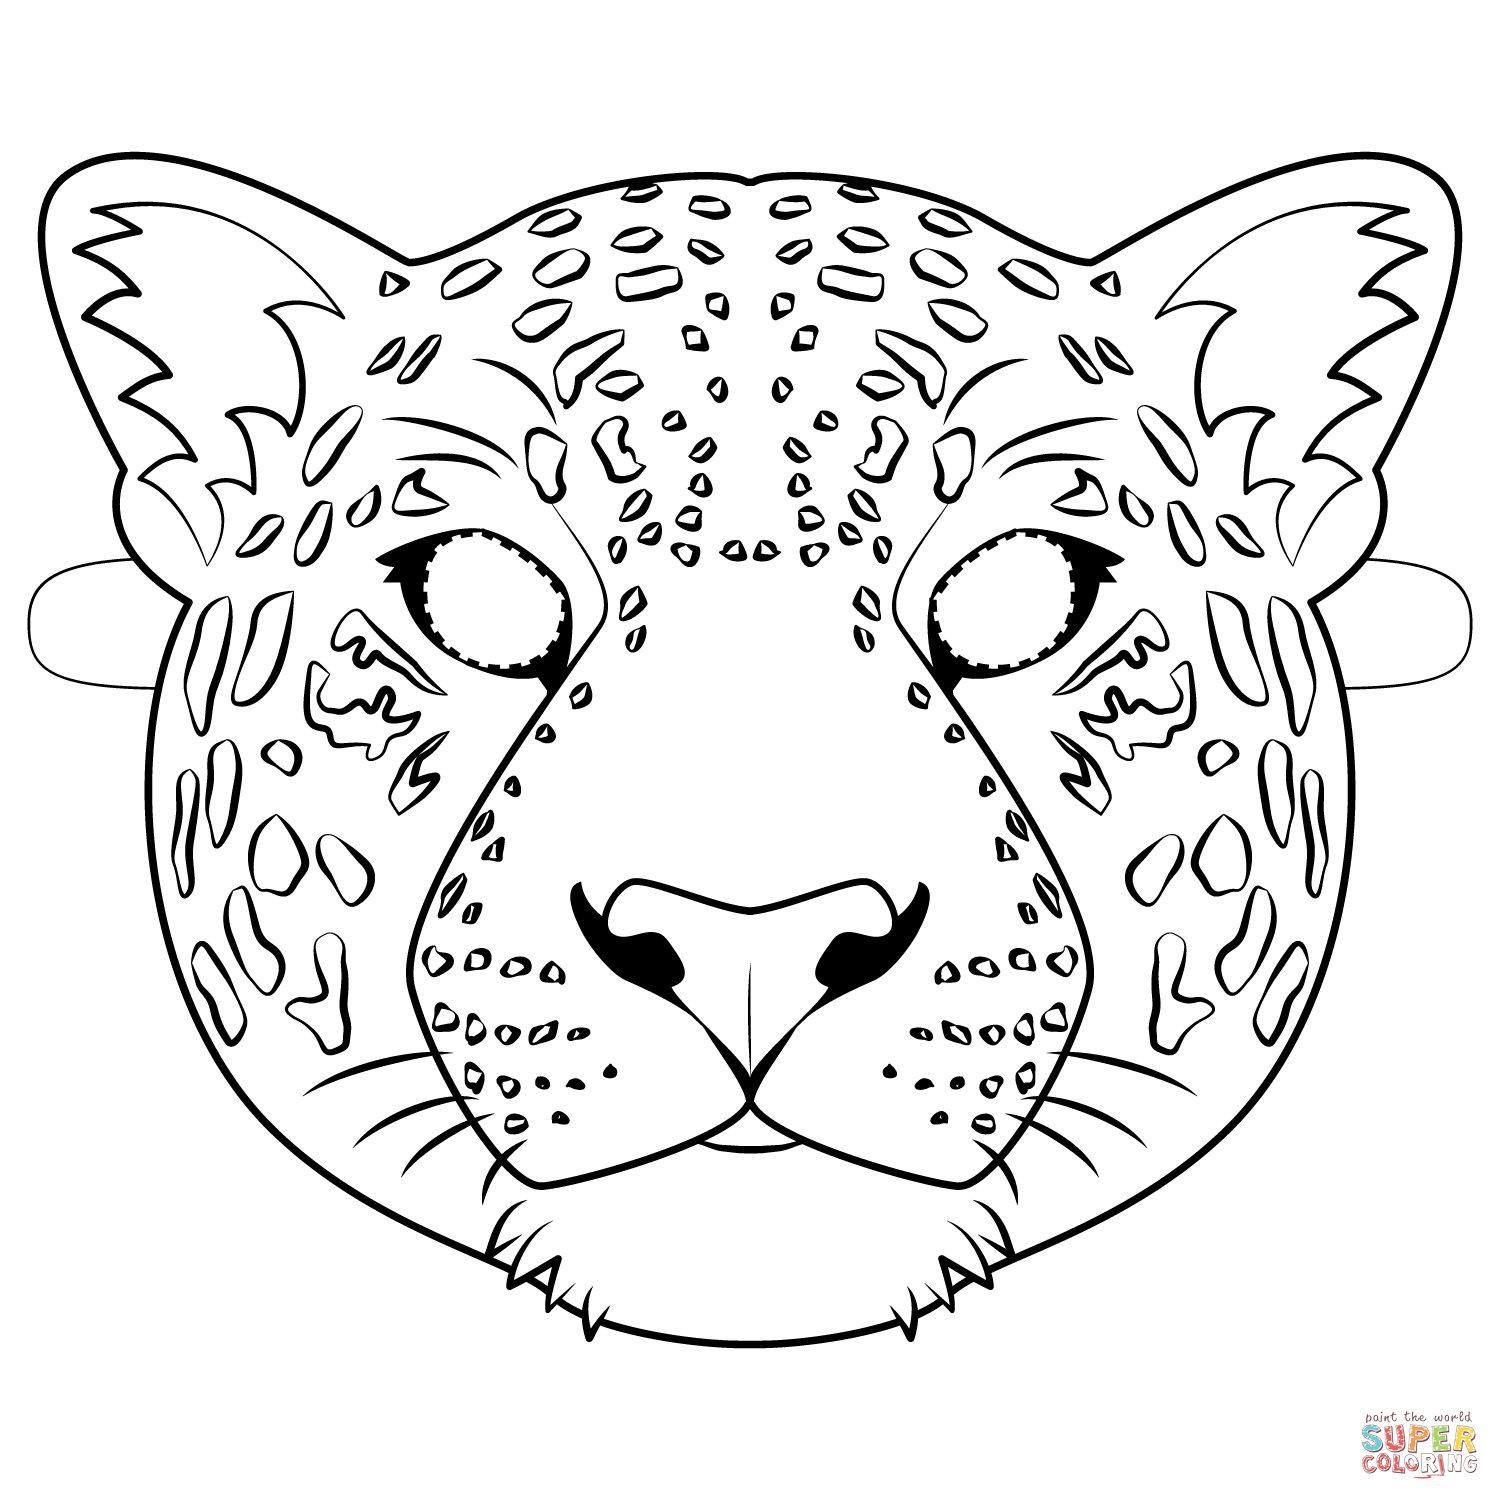 Jaguar Mask Coloring Page Free Printable Coloring Pages Animal Mask Templates Coloring Pages Coloring Mask